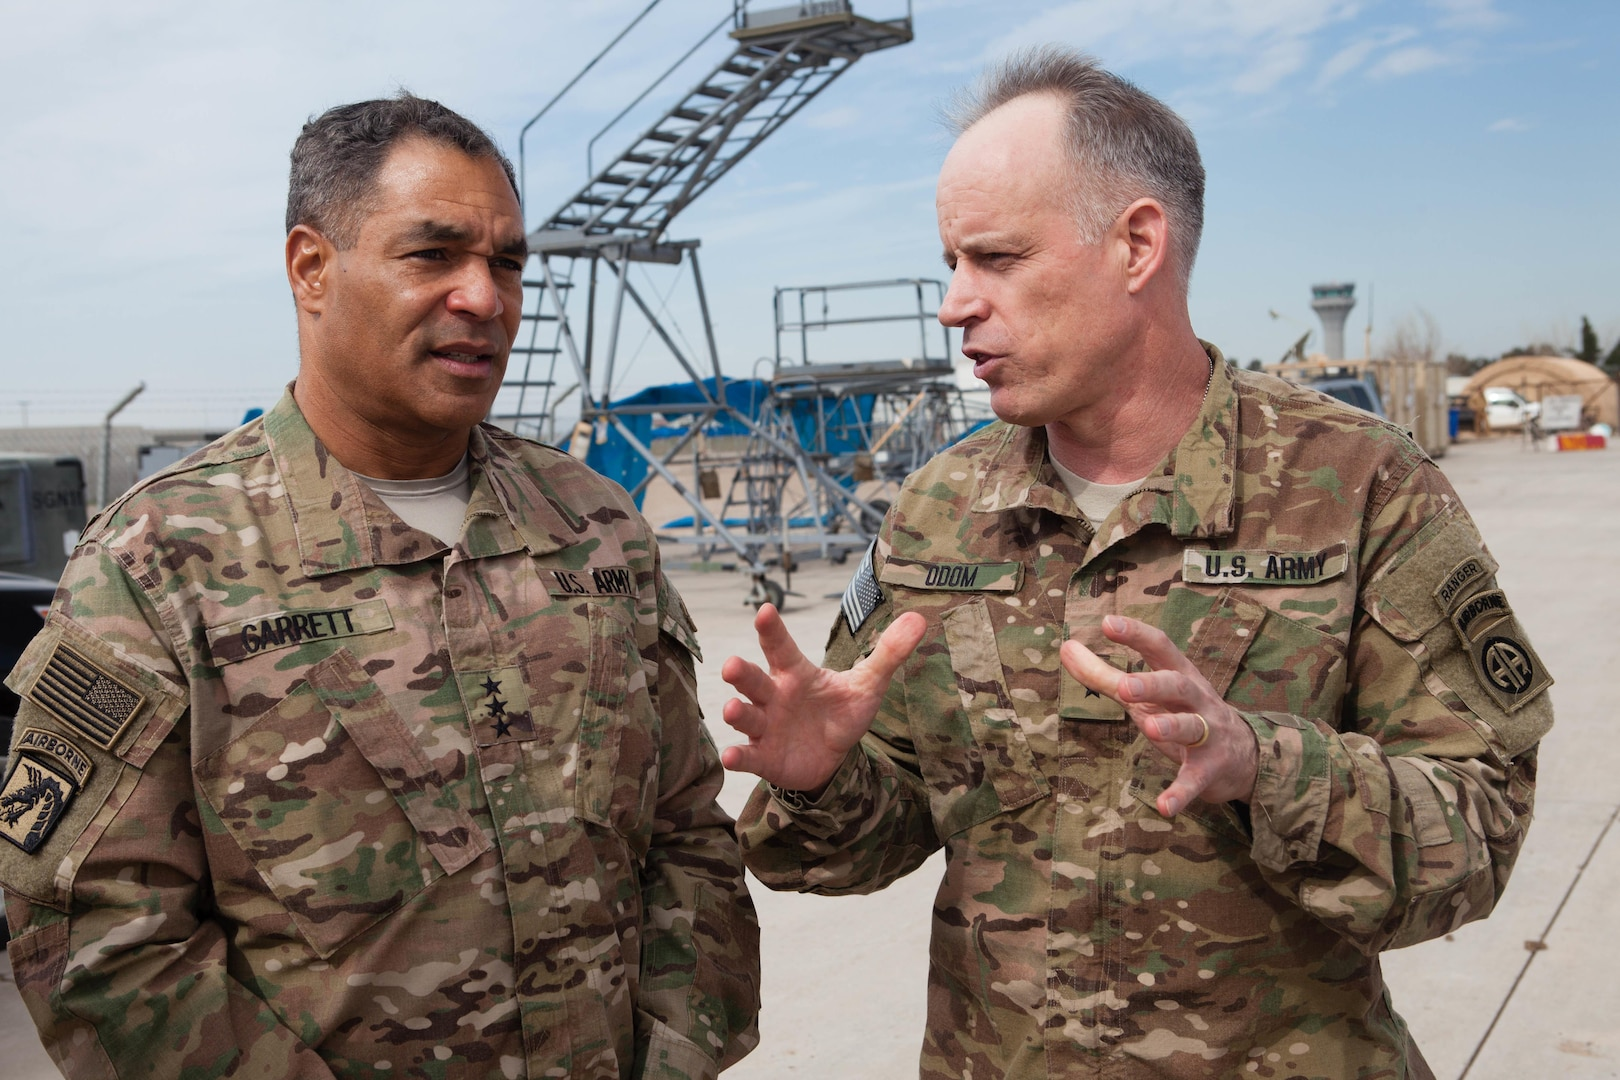 Lieutenant General Michael Garrett, left, U.S. Army Central commander, meets with Brigadier General Mark Odom, 82nd Airborne Division deputy commander for operations, during battlefield circulation of Iraqi area of operations in Erbil, Iraq, February 27, 2016 (U.S. Army/Jake Hamby)